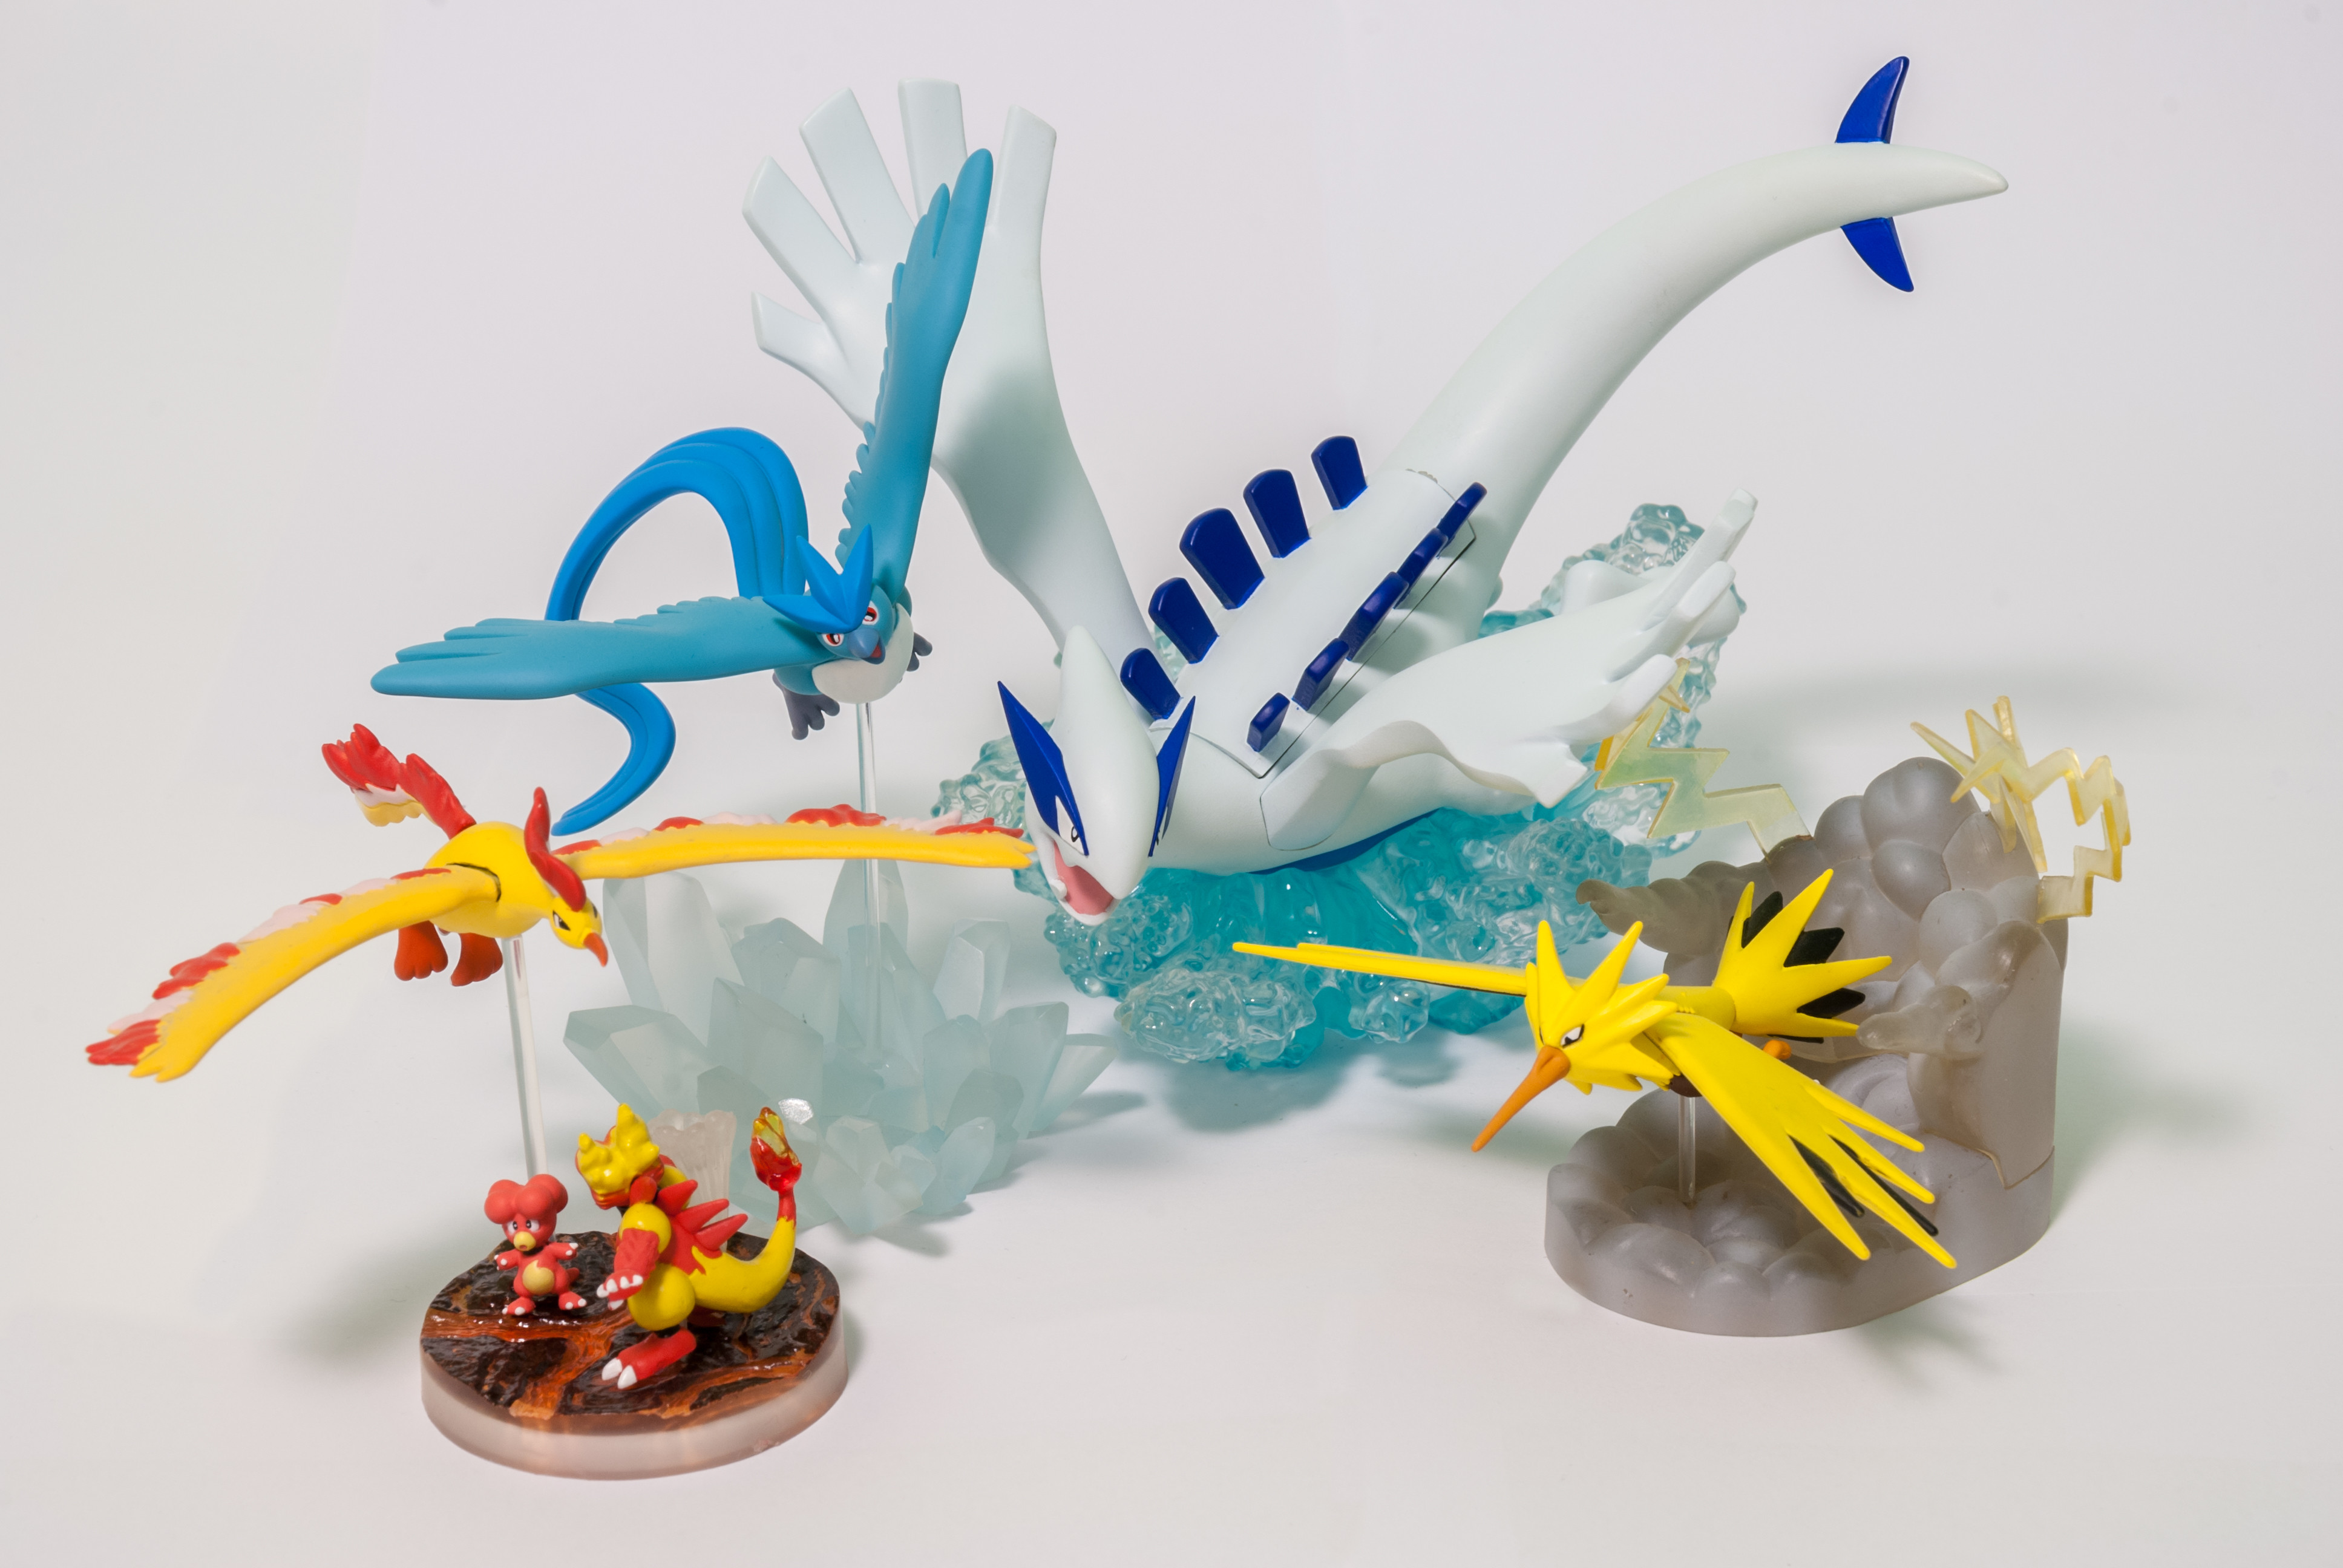 GSC 05 Magby/Magmar, Zapdos and DP 15 Moltres and DS Studio 09 Aritcuno and DS Studio 16 Lugia